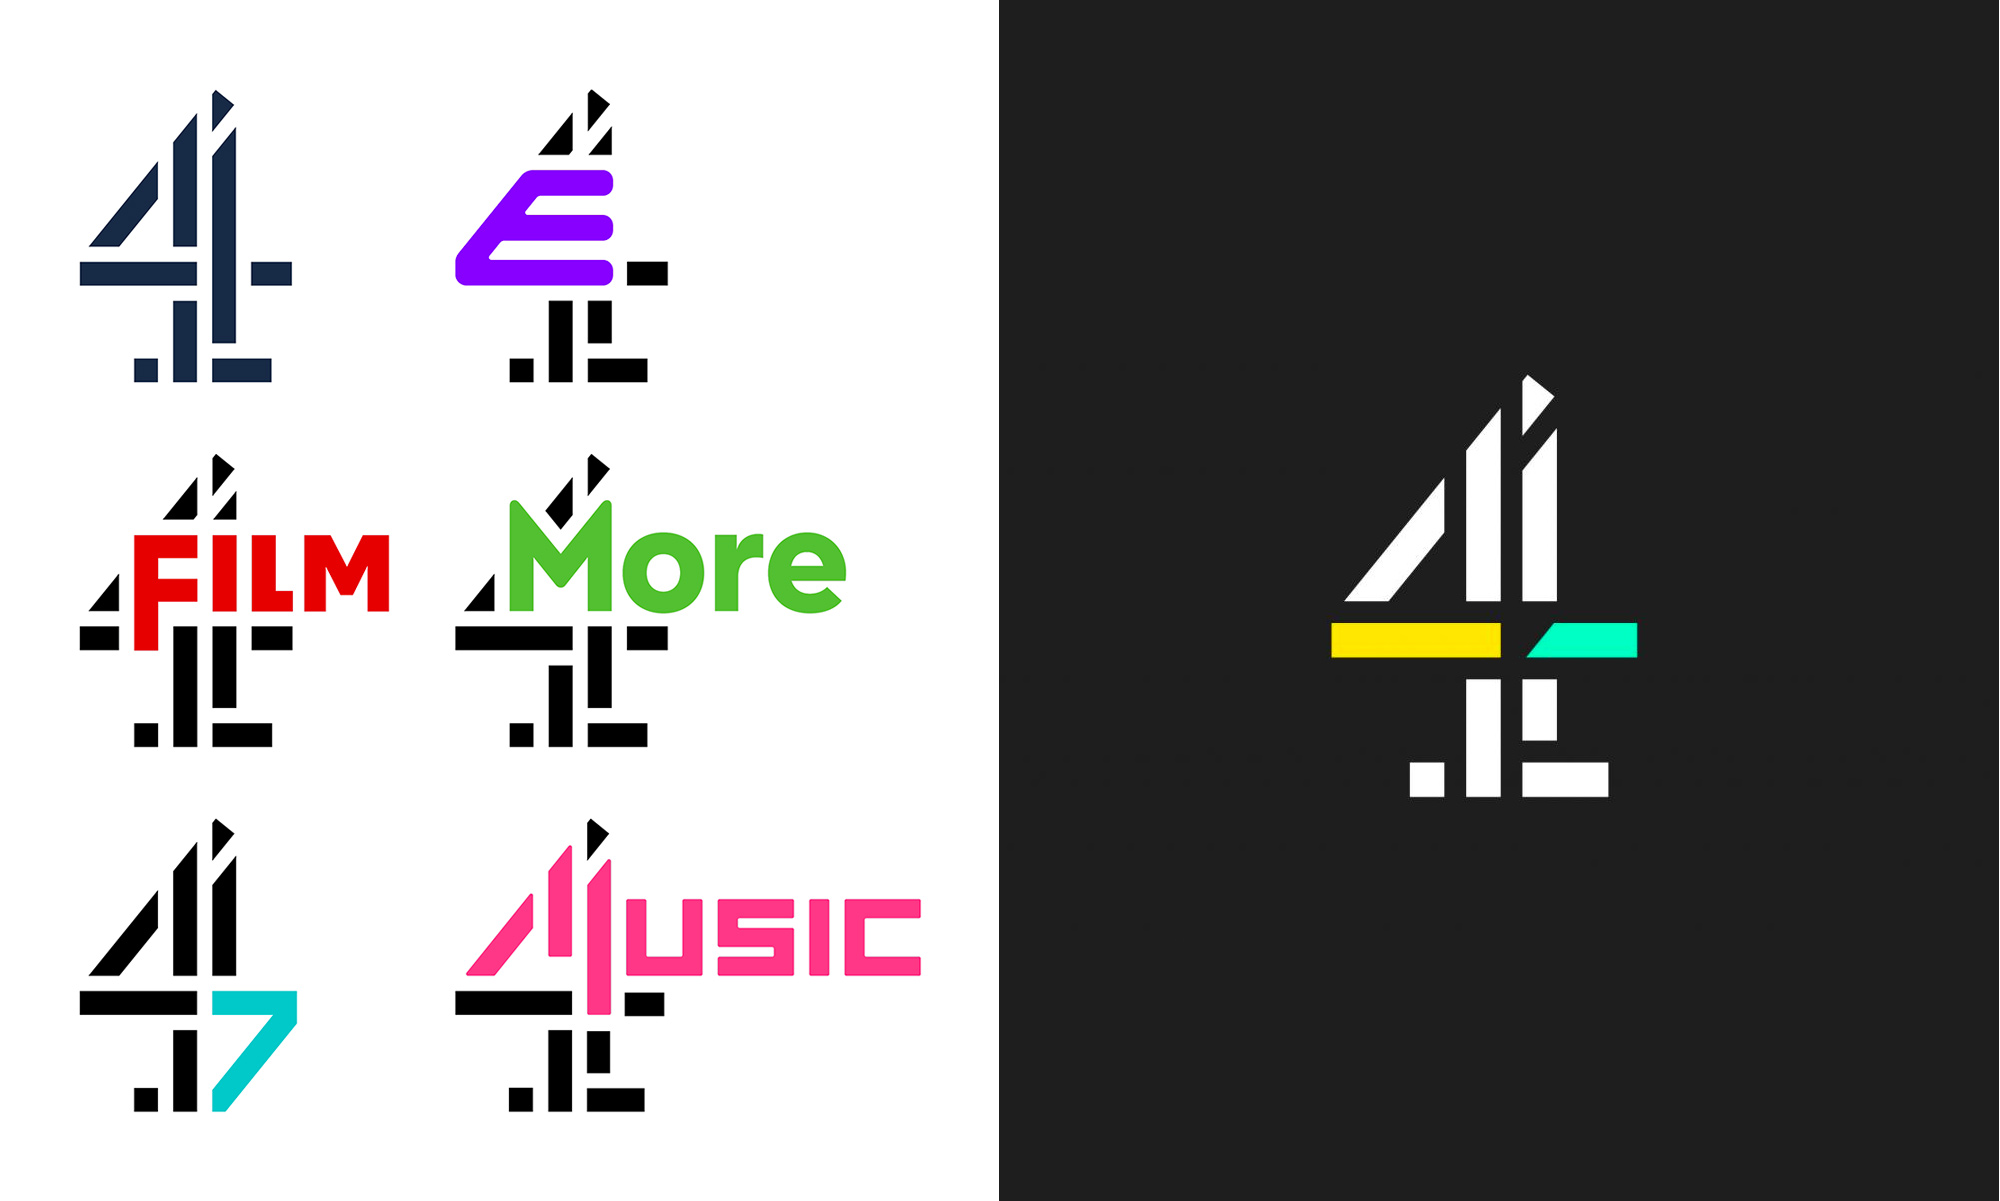 All4_Channel4_logo_with_other_logos.png